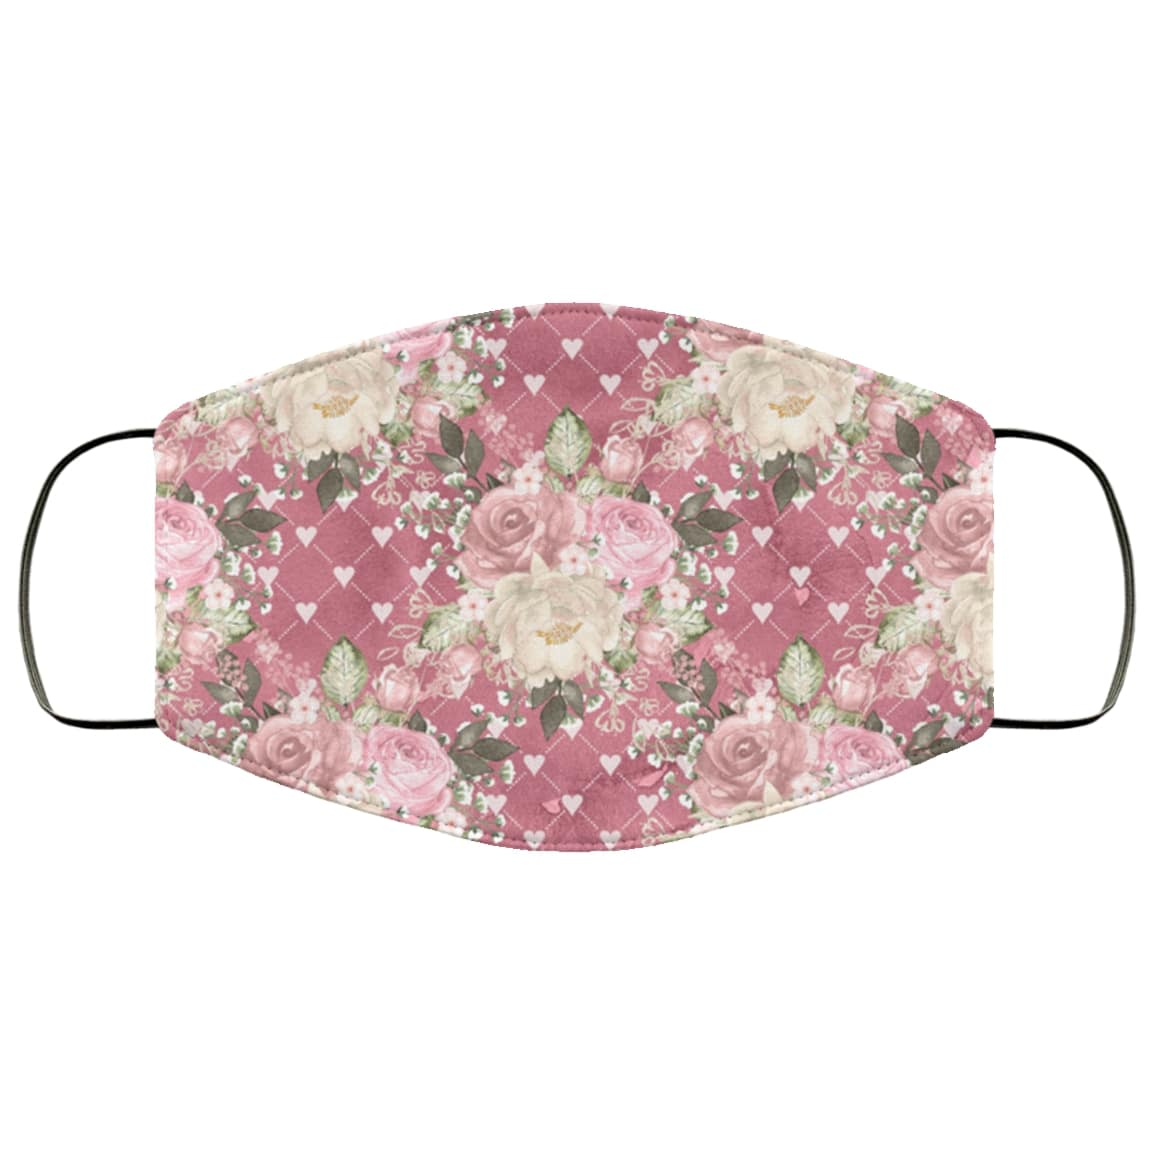 Flowers roses anti pollution face mask 1